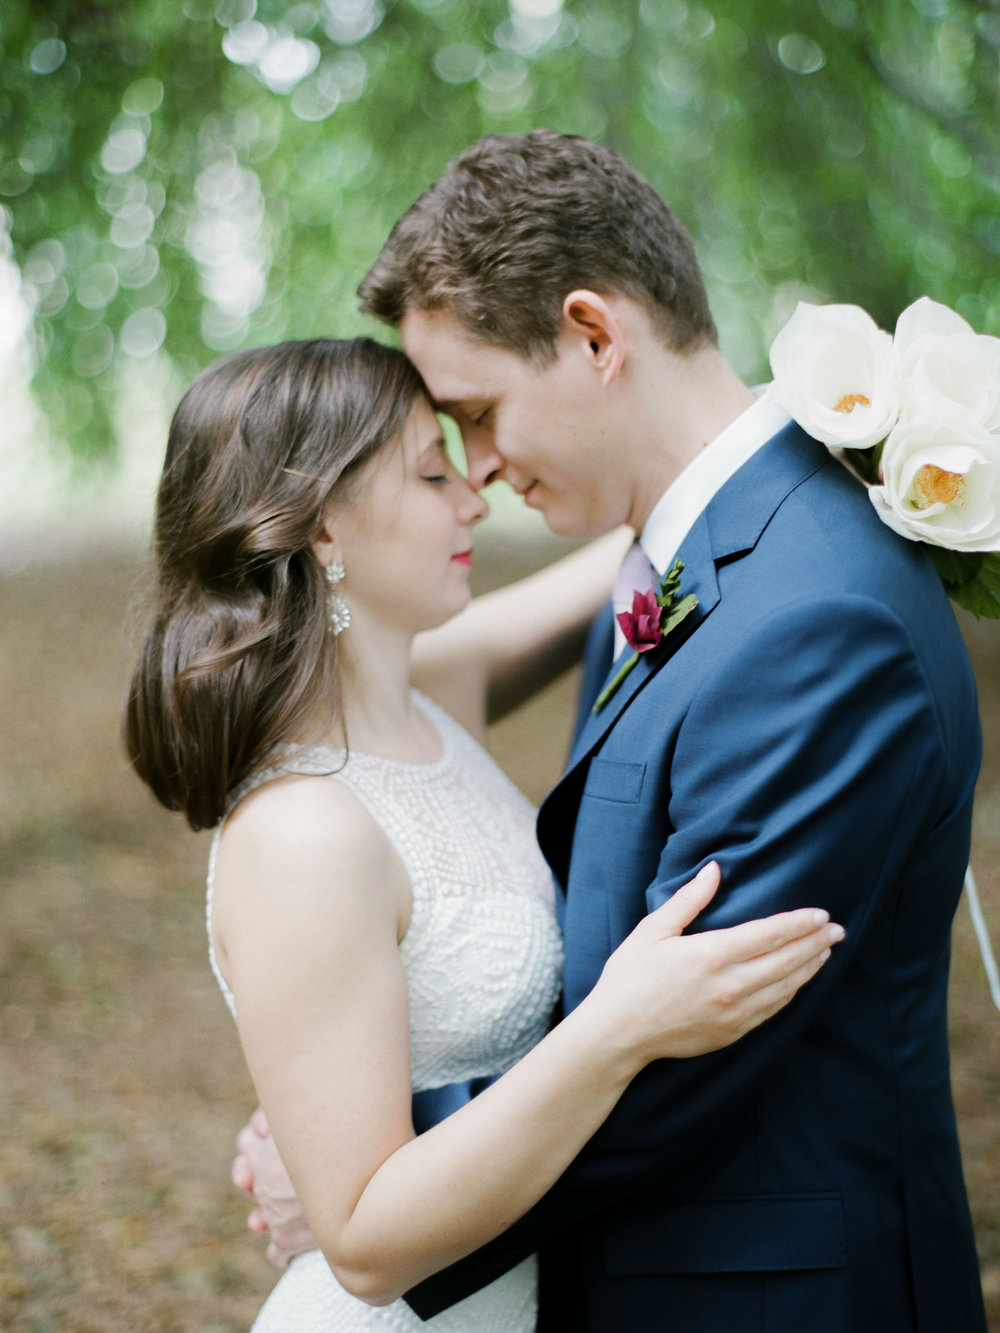 Top wedding photographers in Mass